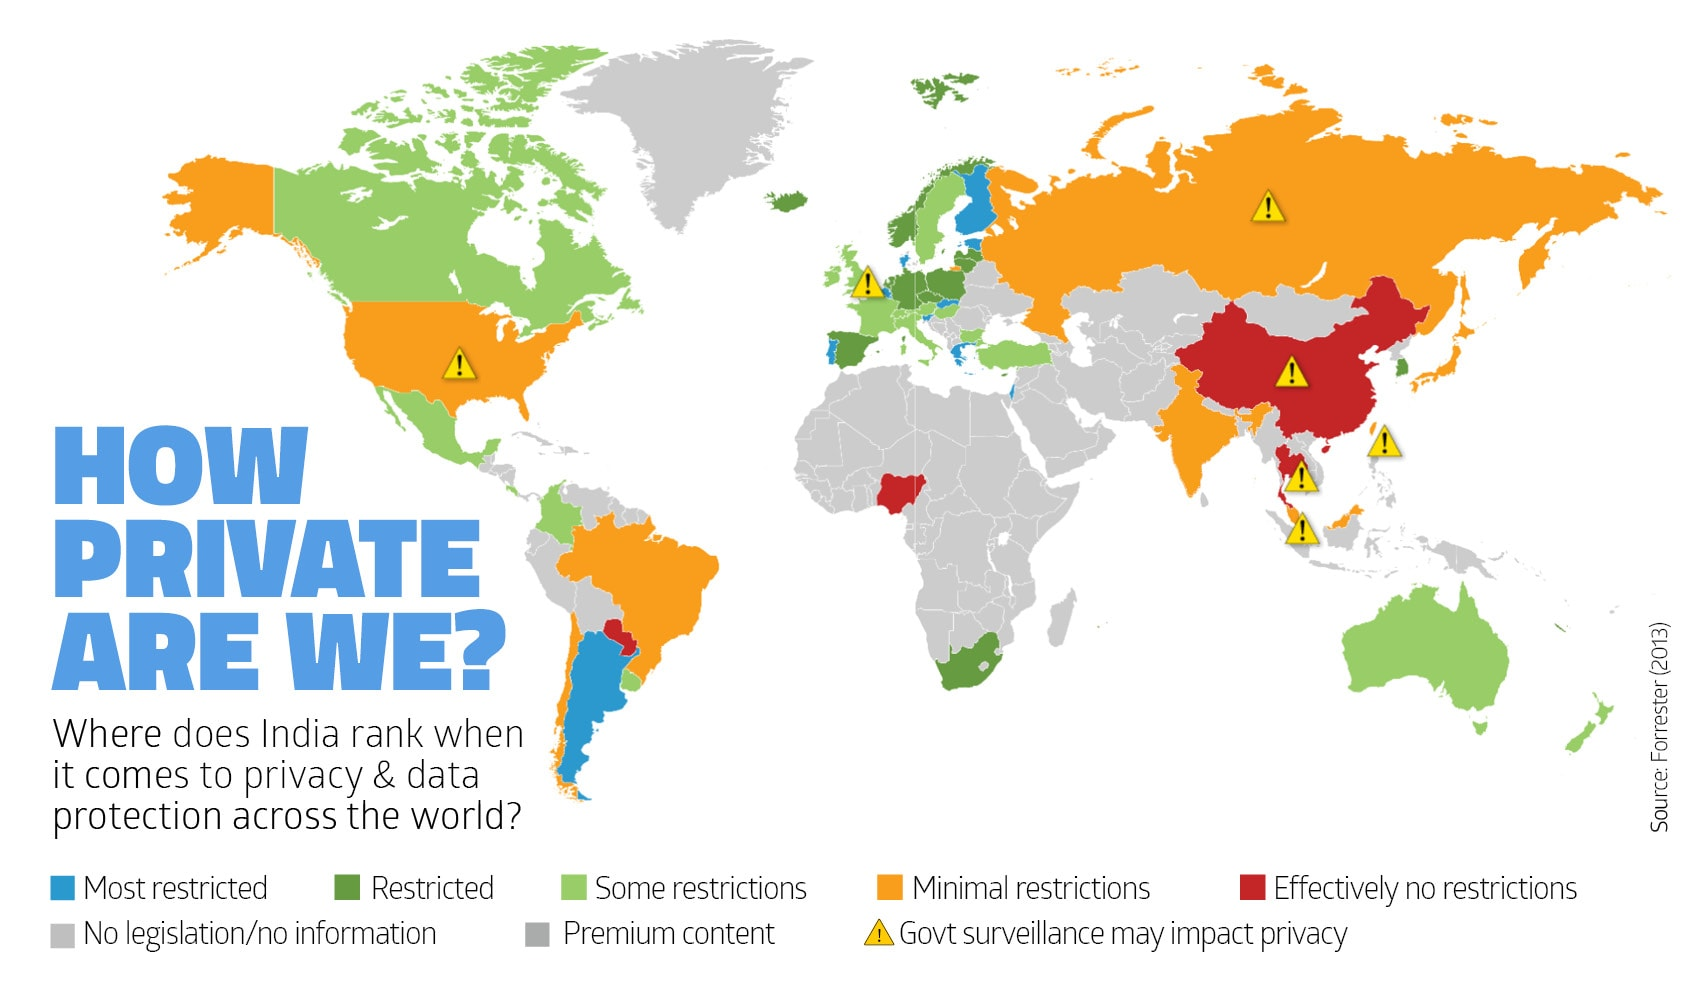 PRIVACY-AND-DATA-PROTECTION-BY-COUNTRY